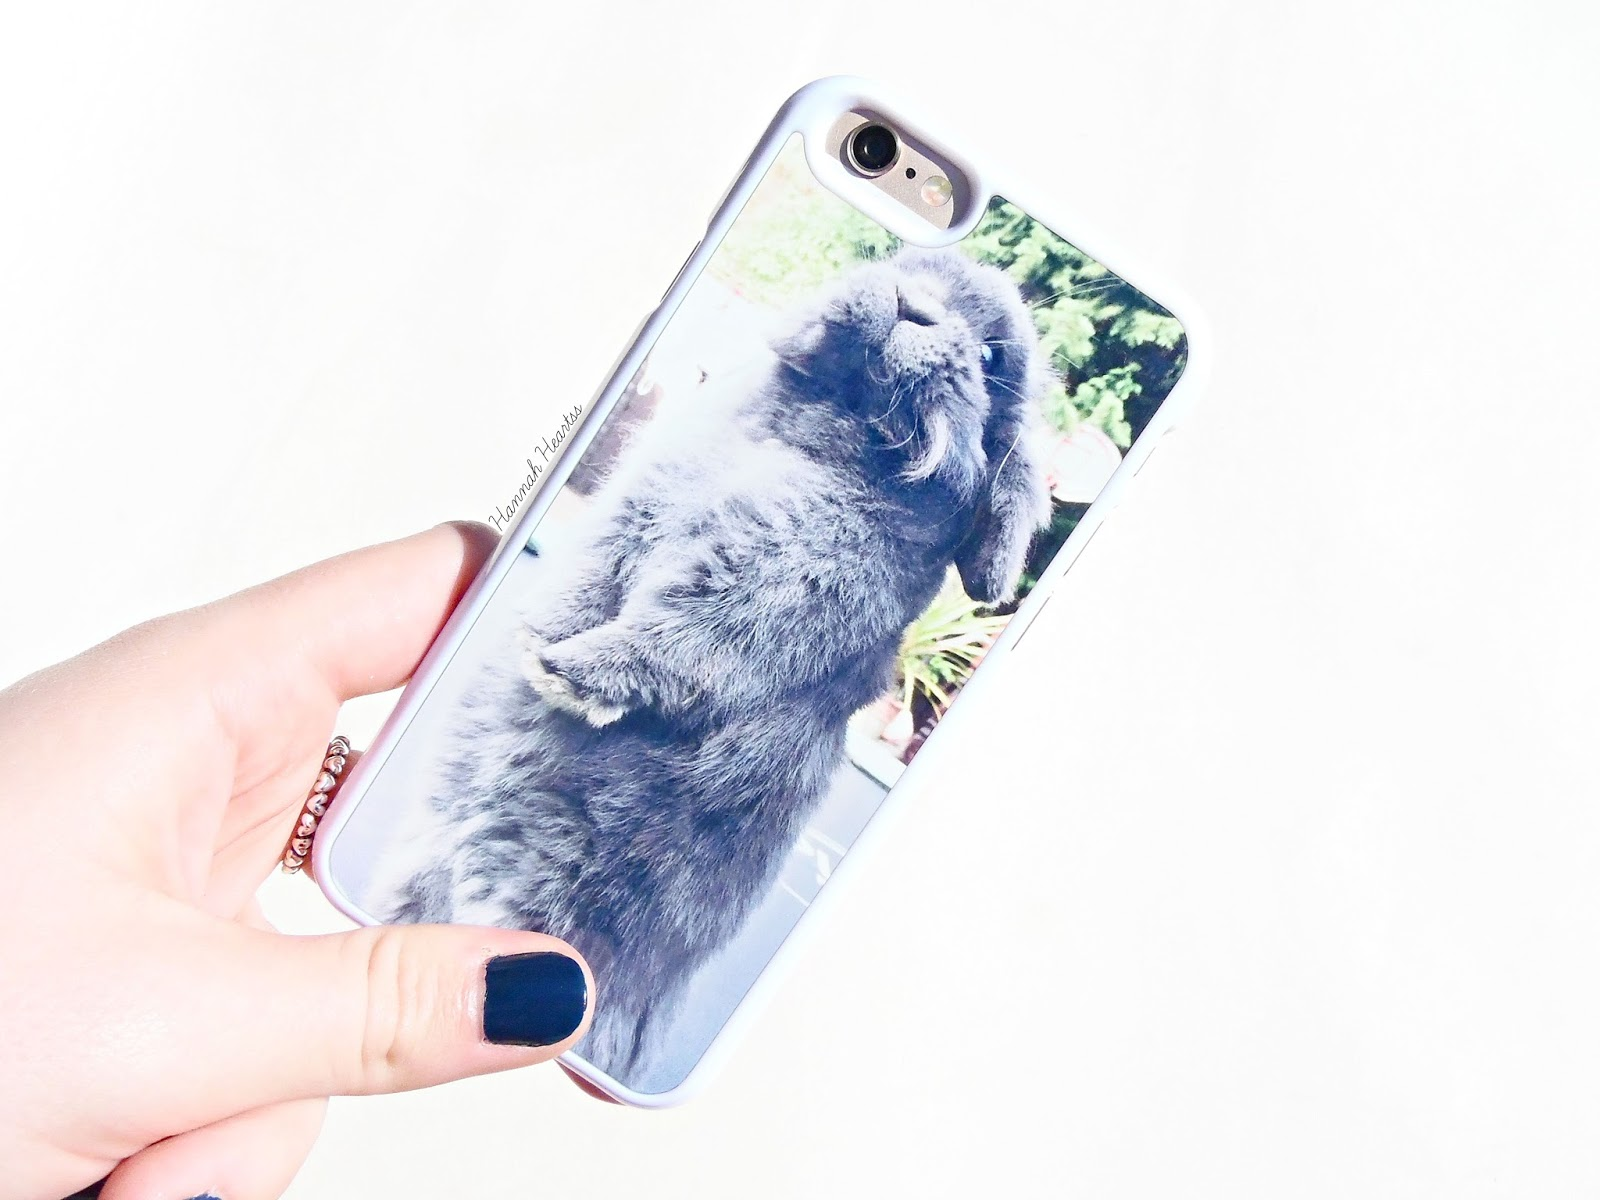 Go Customized iPhone Case Review